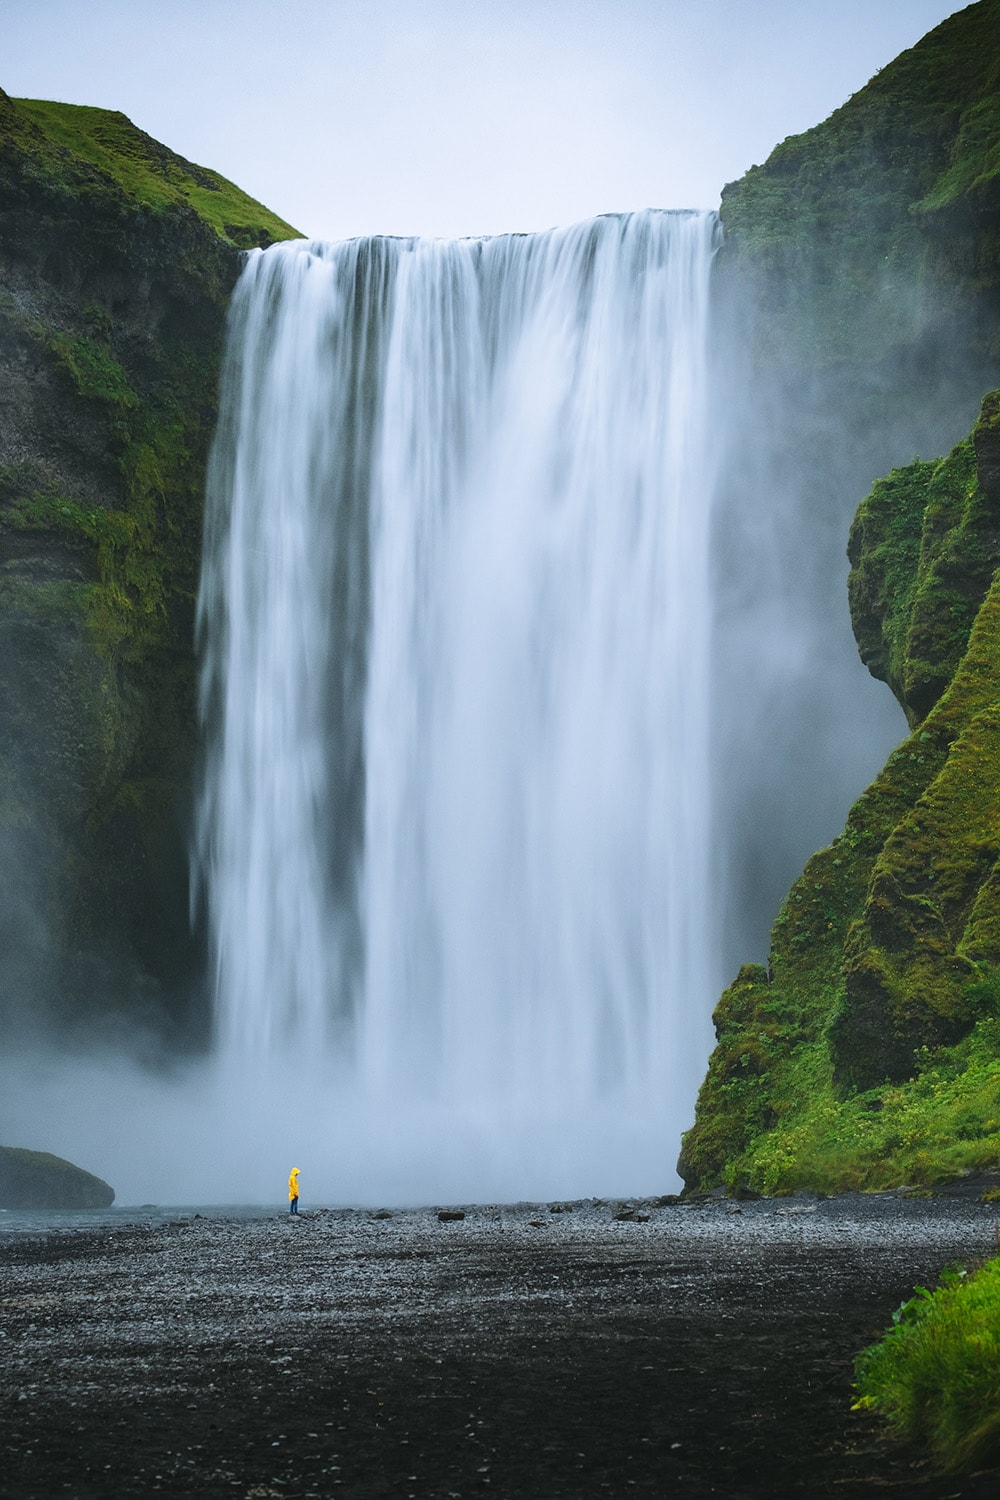 person standing next to waterfall